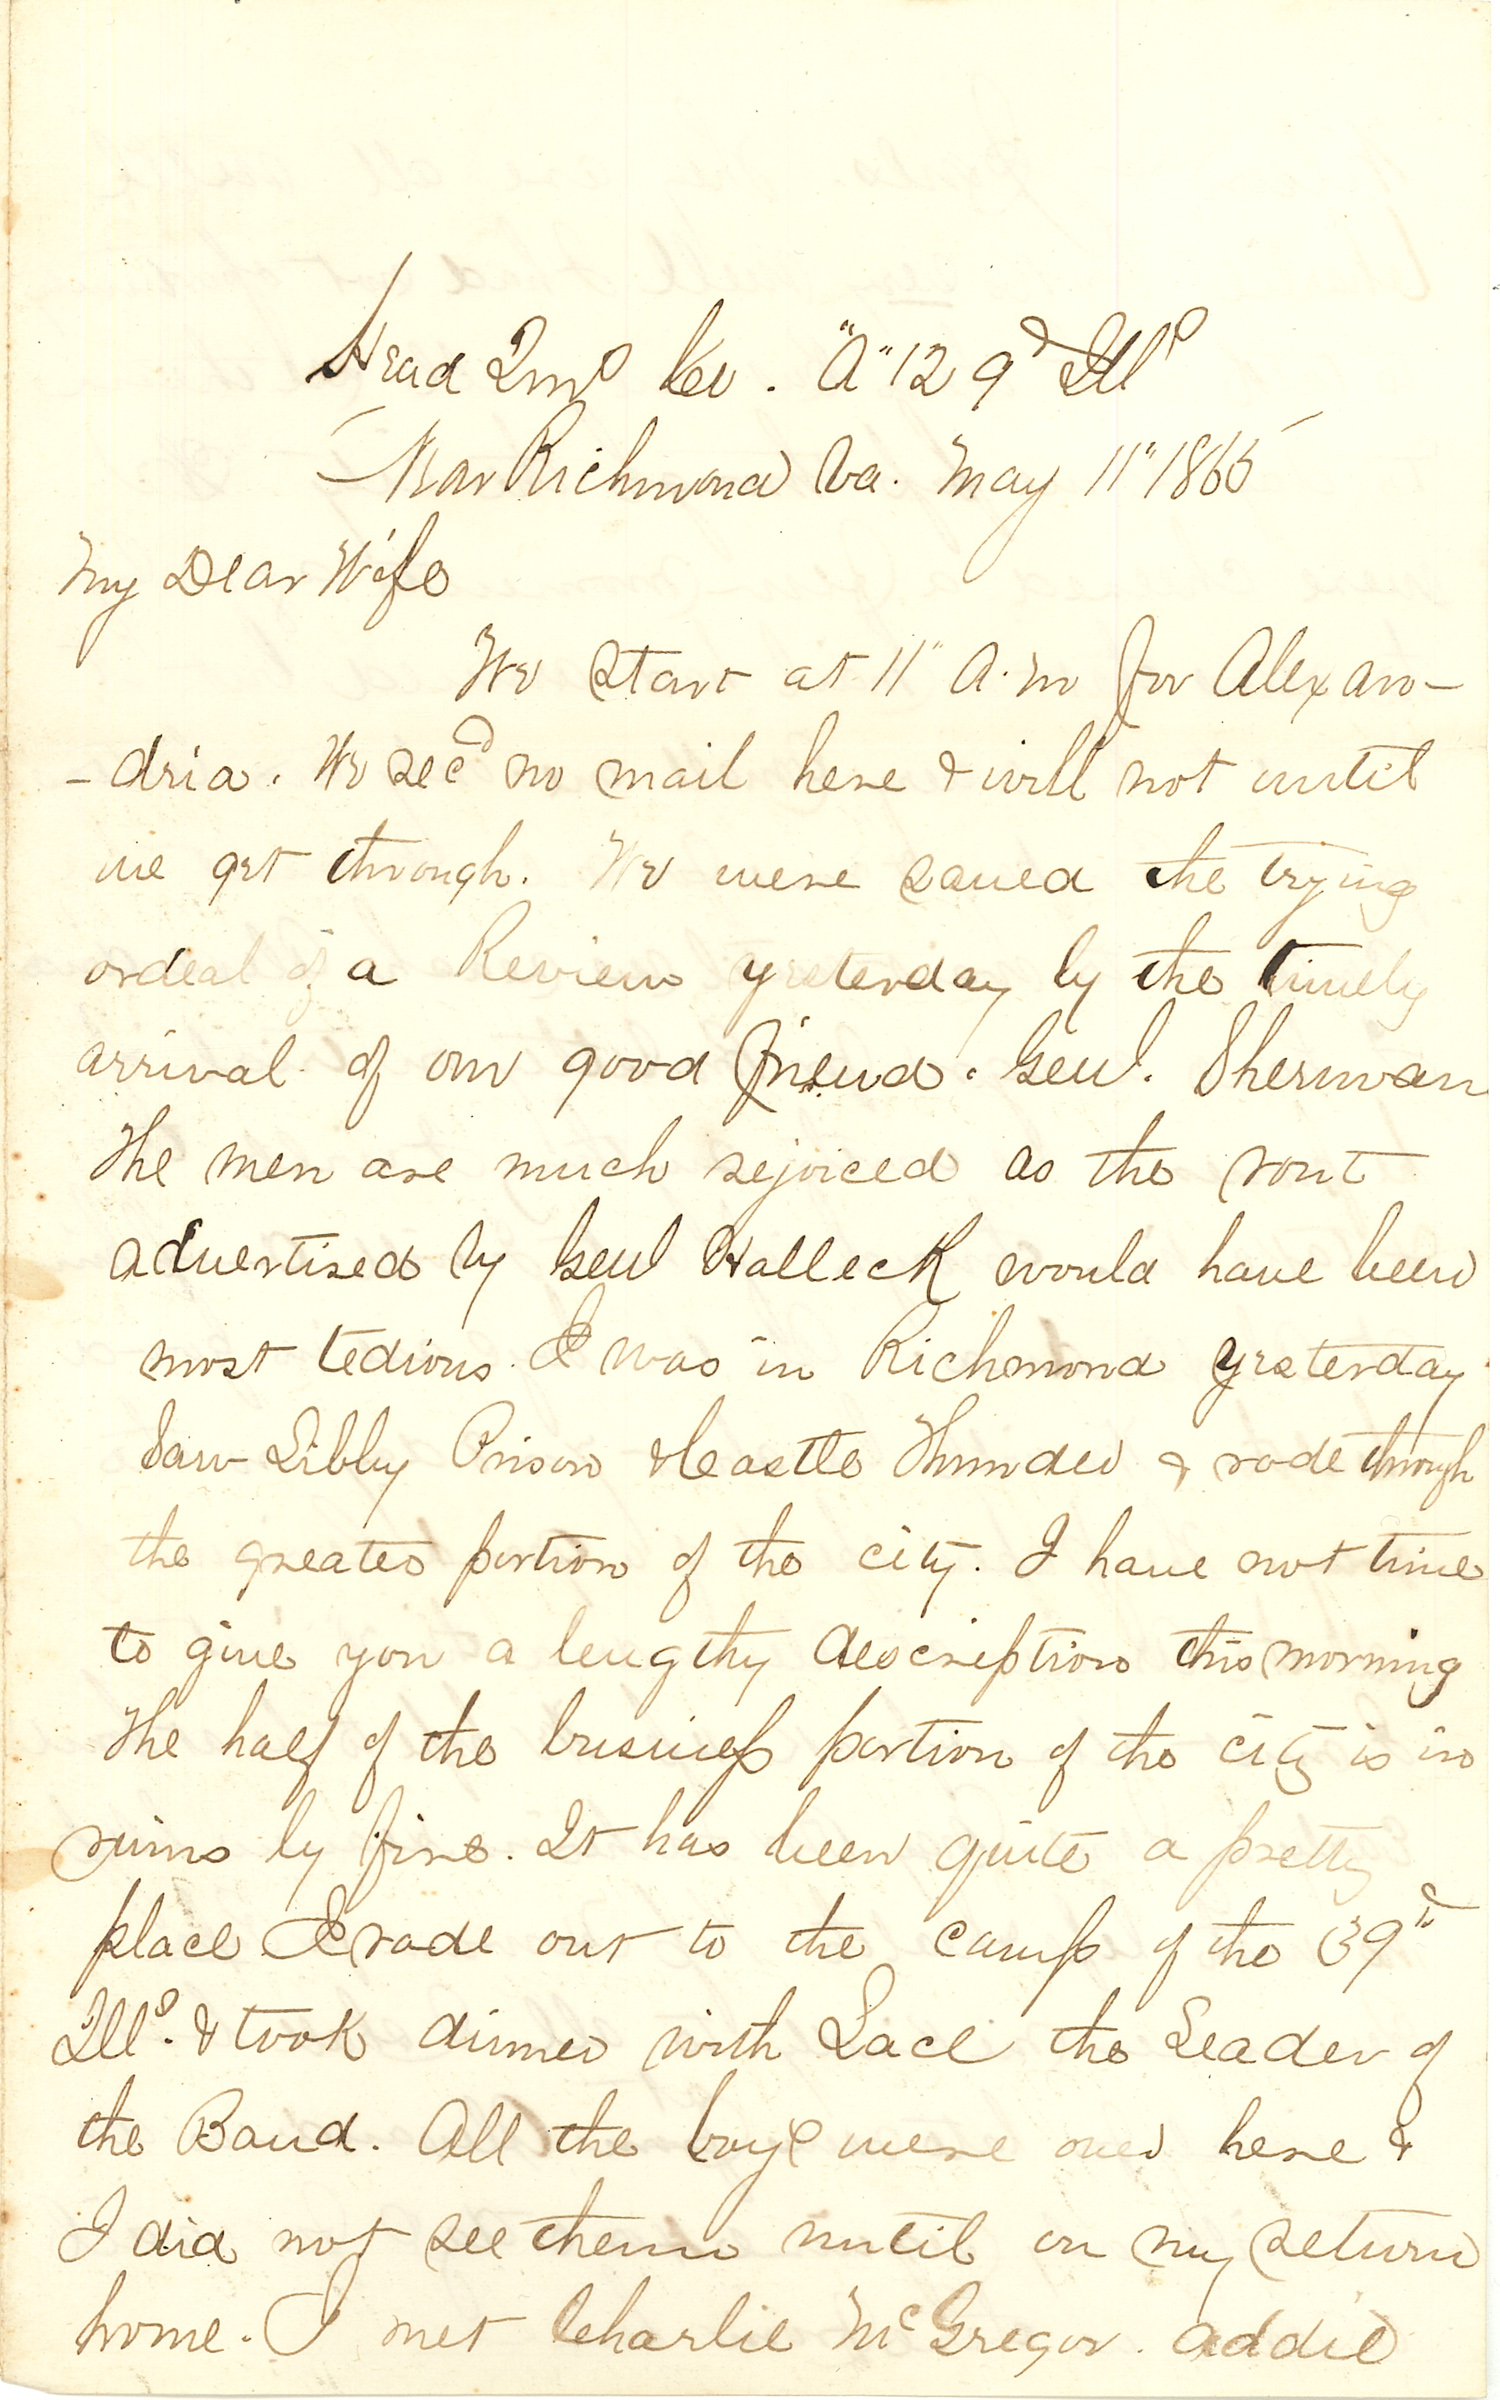 Joseph Culver Letter, May 11, 1865, Page 1